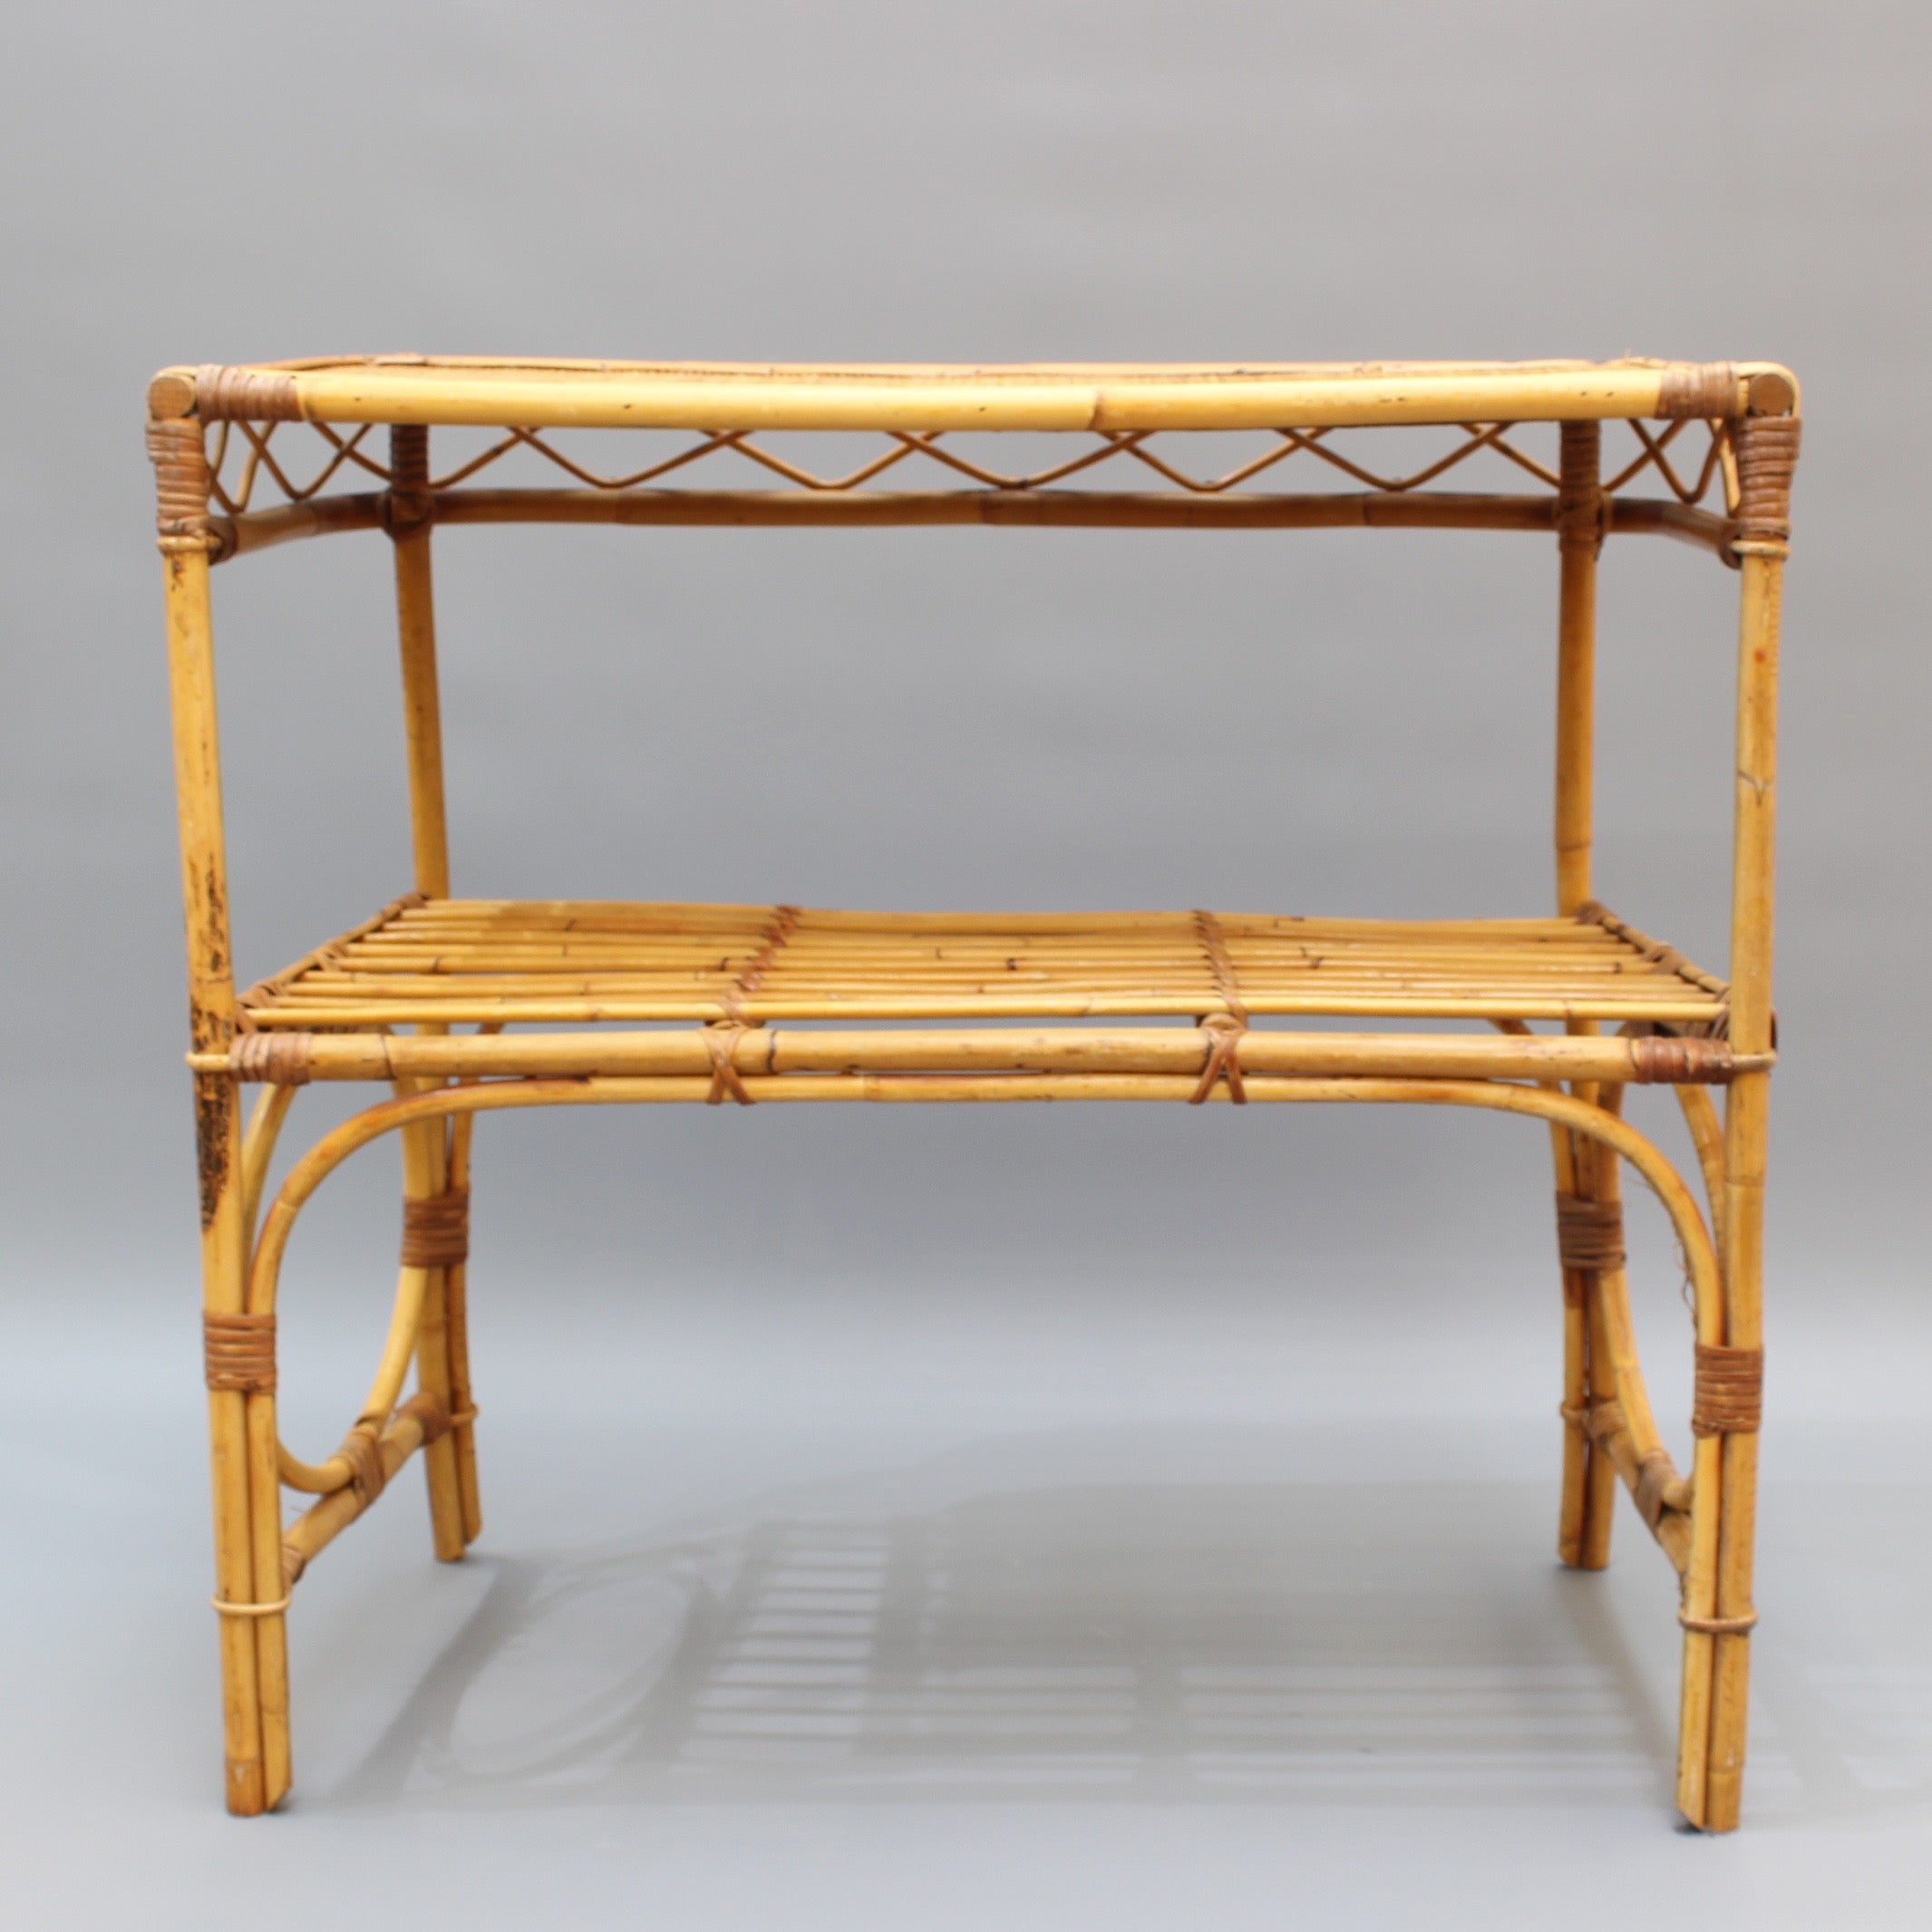 Italian Rattan and Bamboo Console Table (circa 1960s)